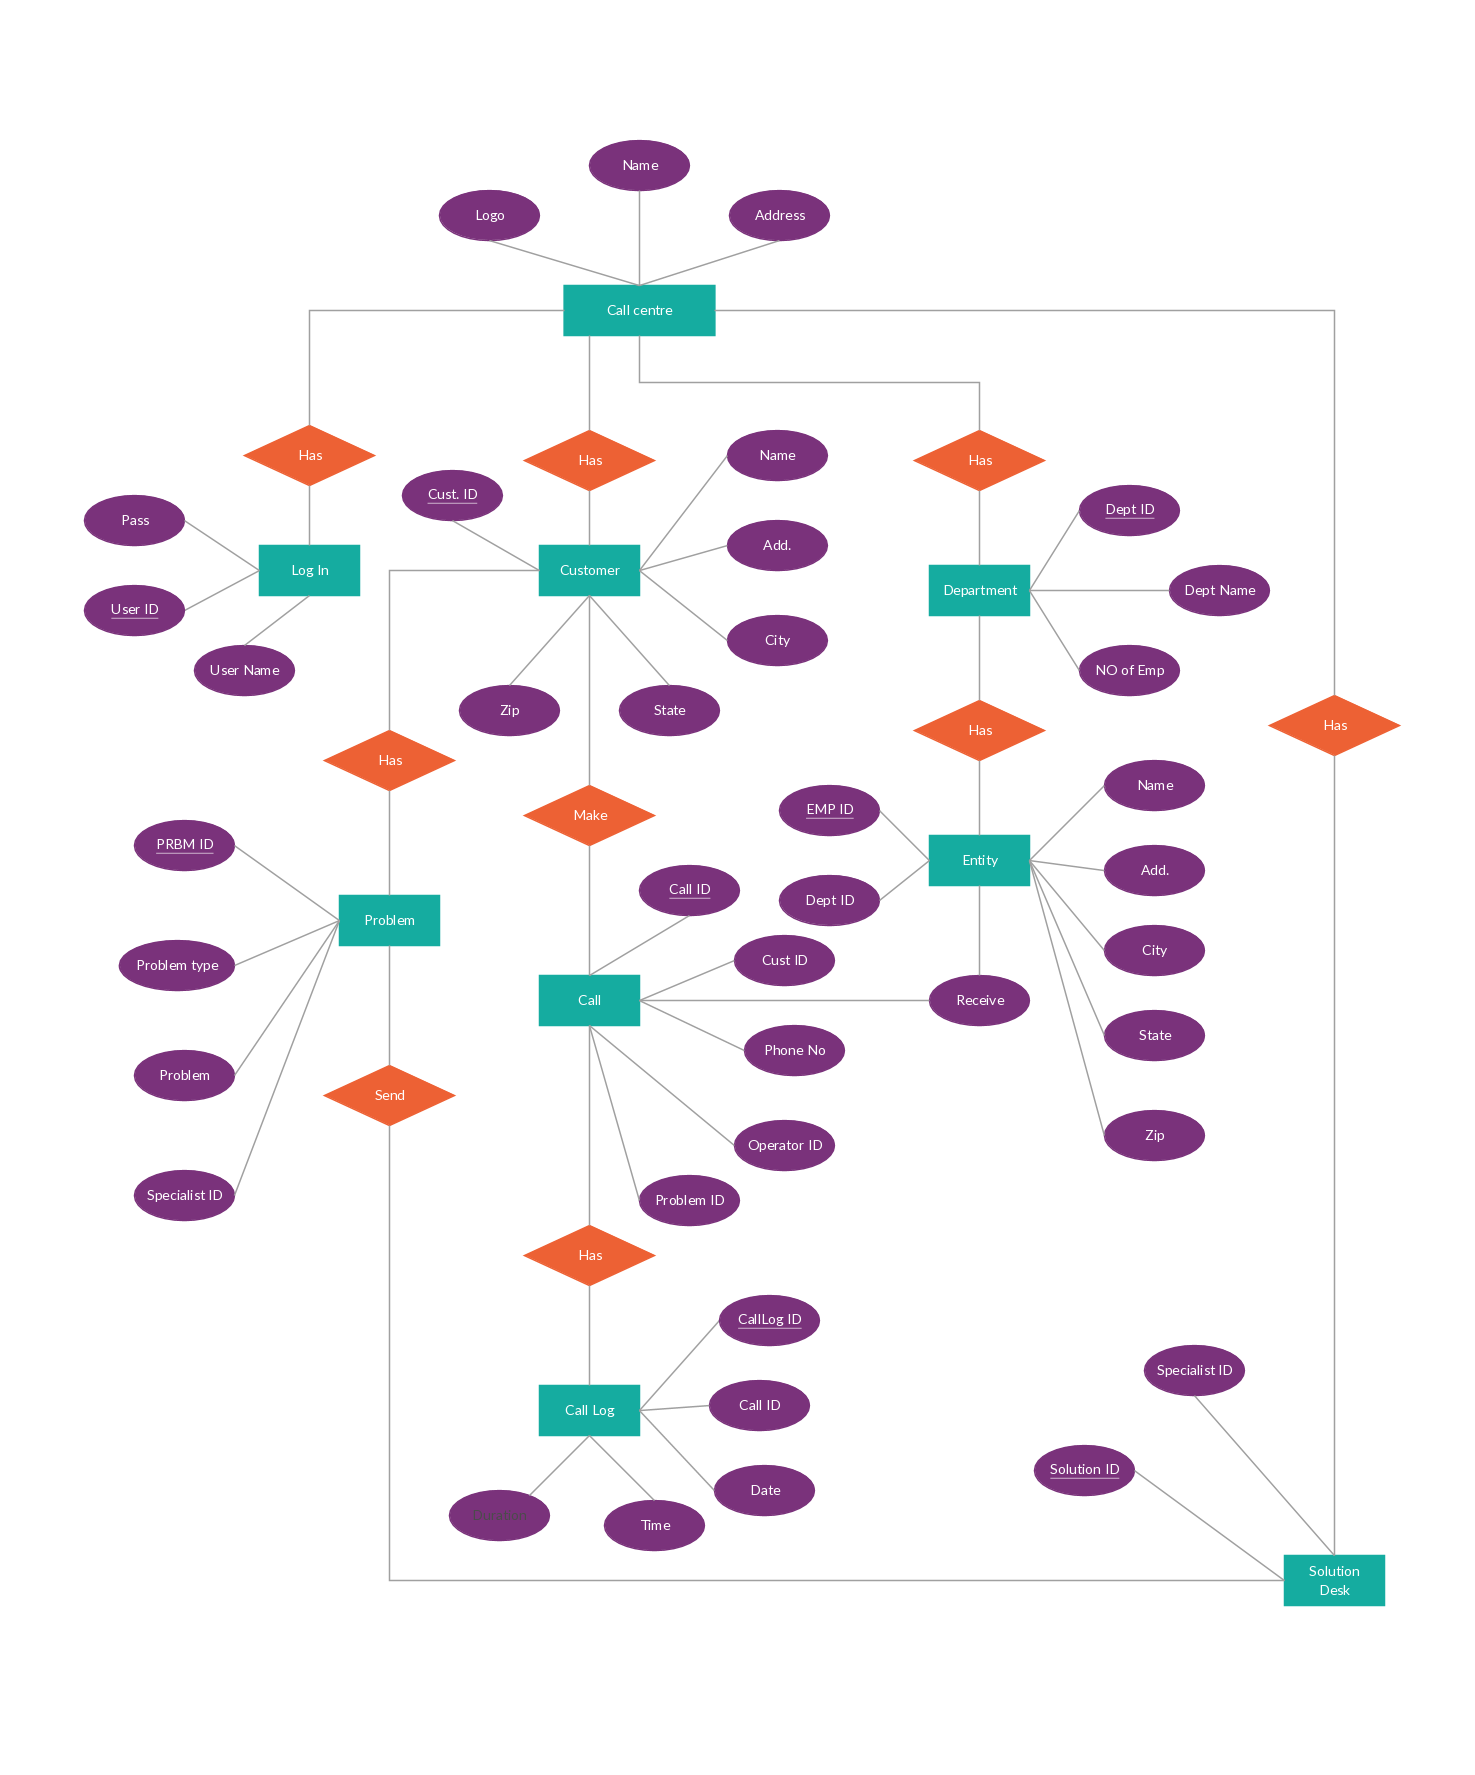 call center management system entity relationship diagram example  [ 1475 x 1775 Pixel ]